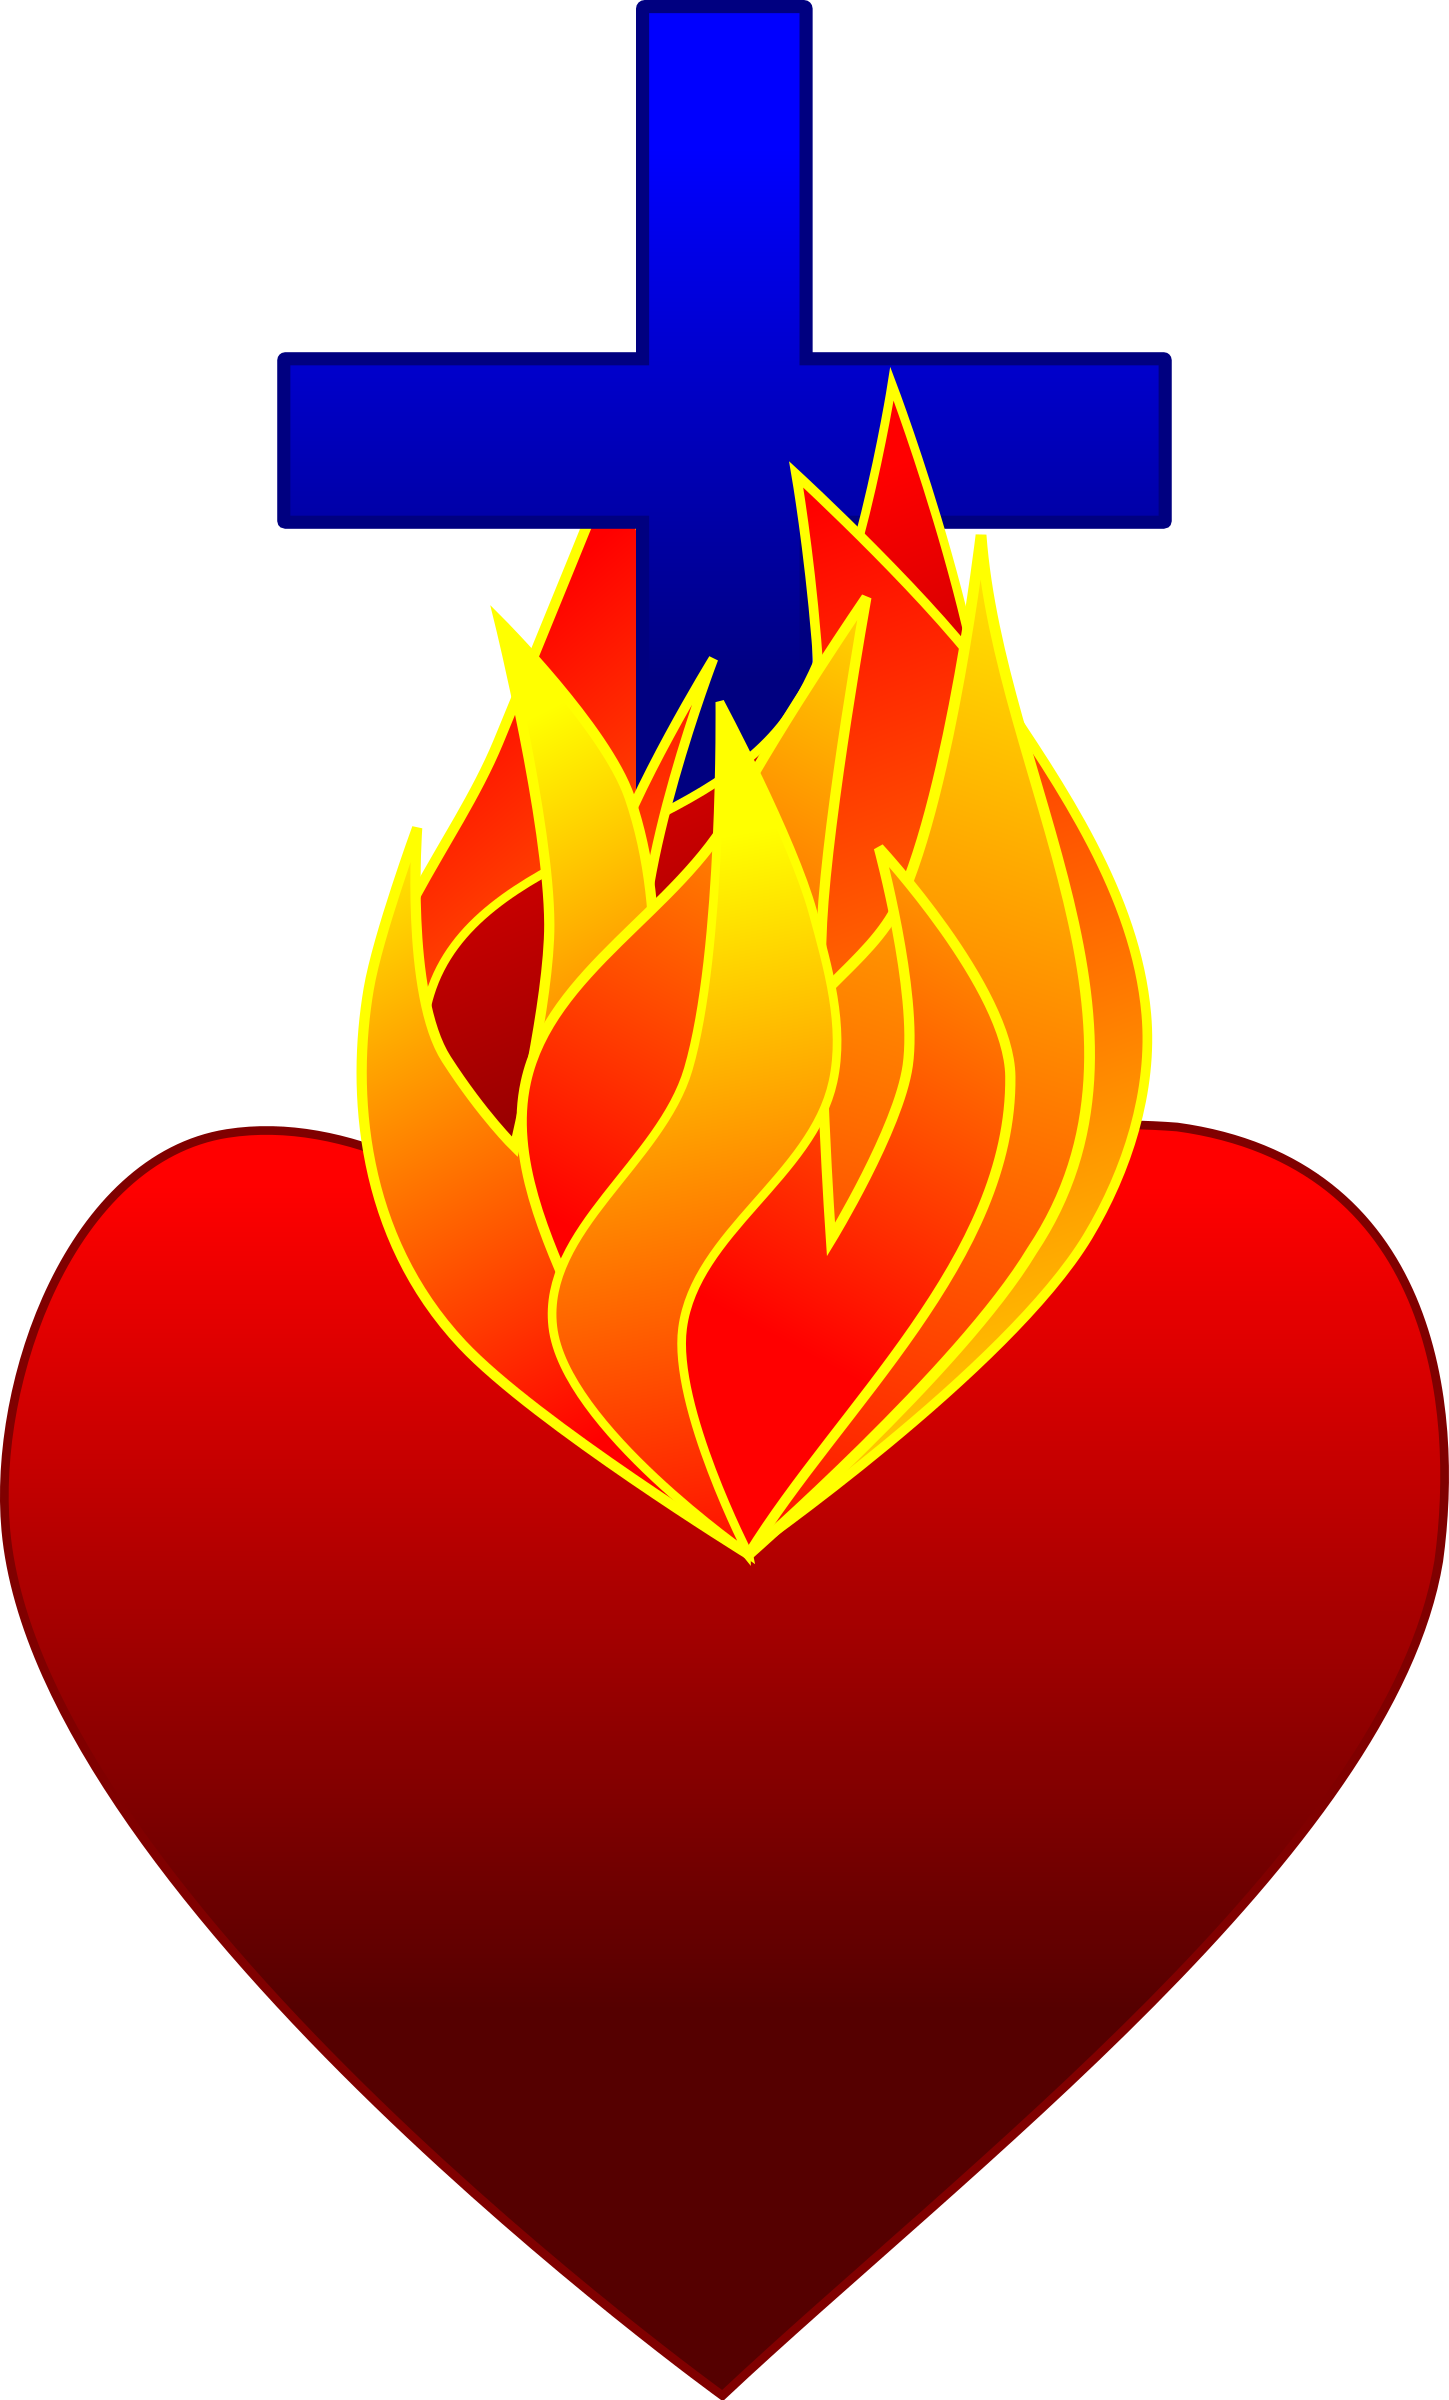 Heart on big image. Fire clipart pdf